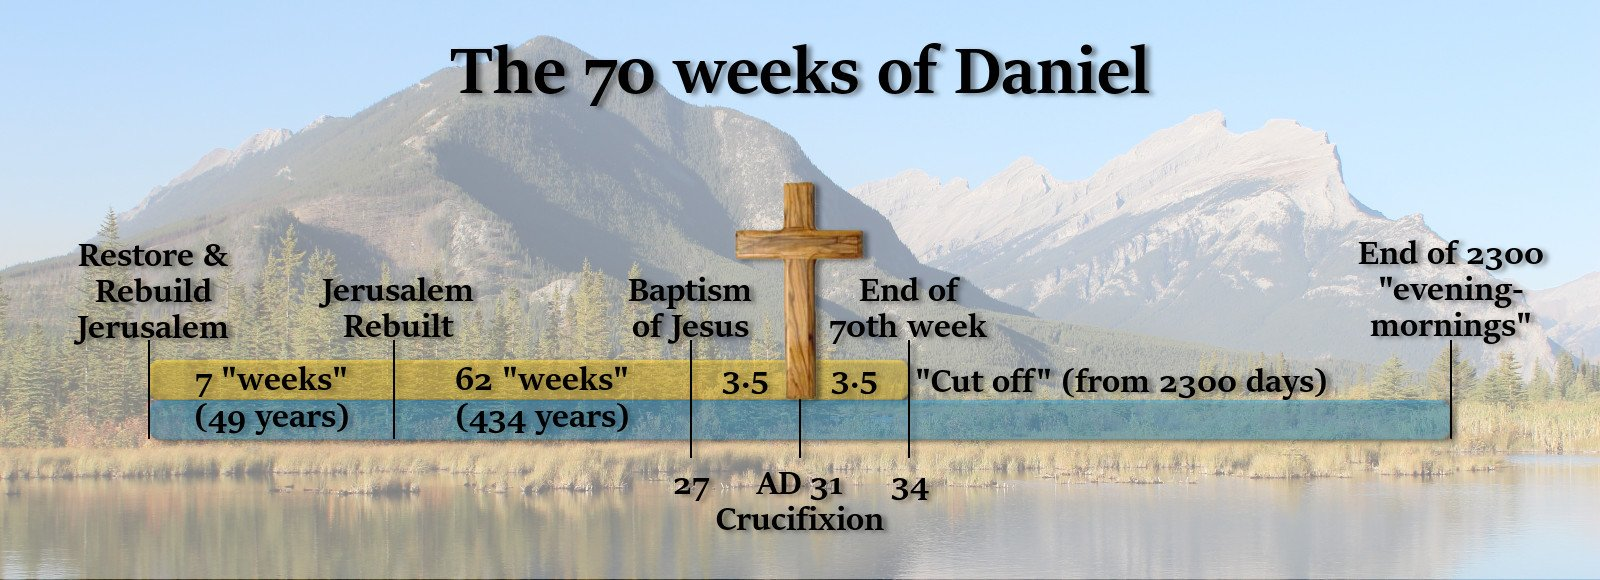 The Classic 70 Weeks of Daniel